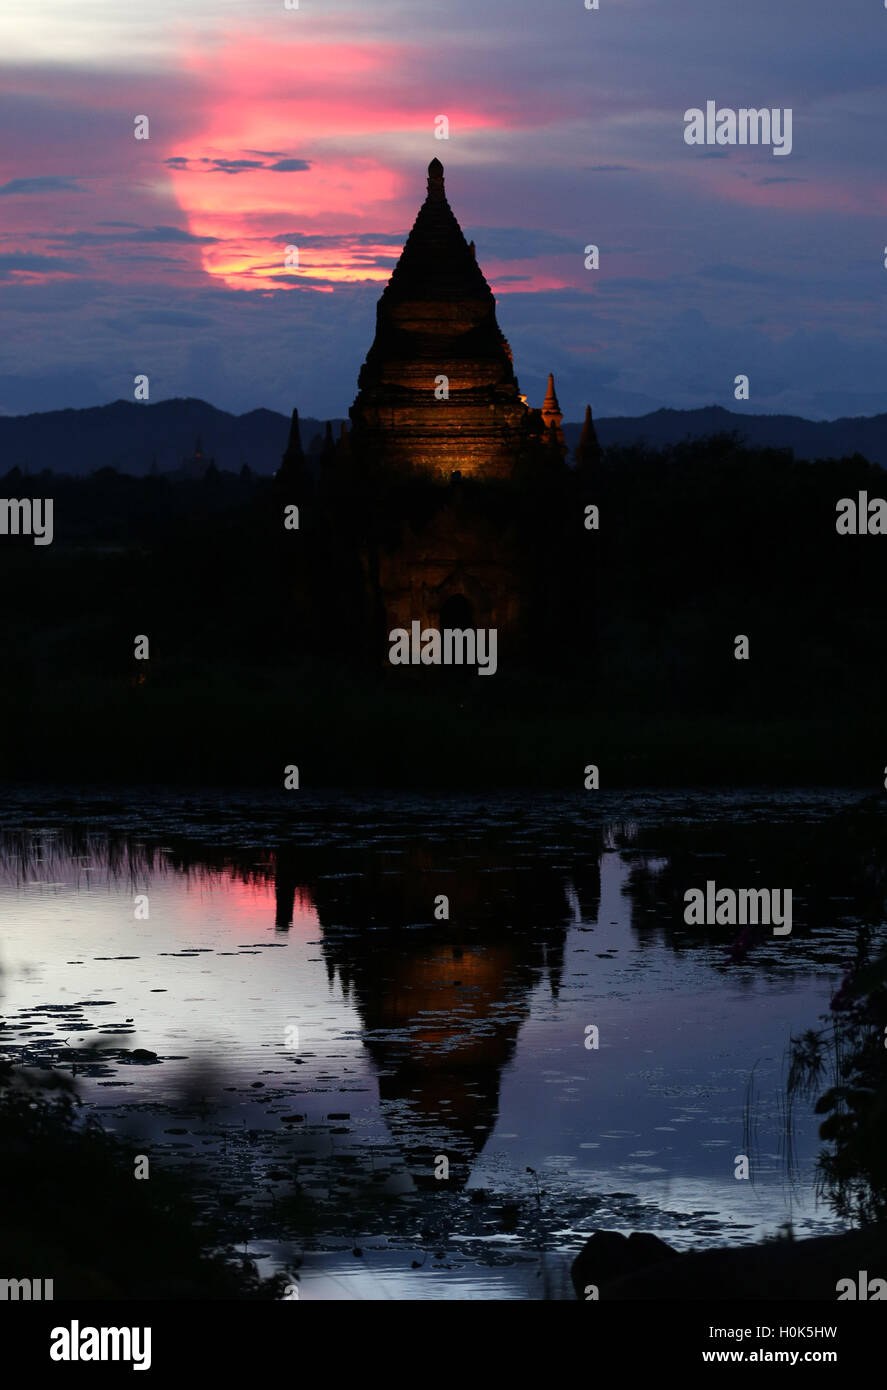 (160922) -- BAGAN (MYANMAR), Sept. 22, 2016 (Xinhua) -- A pagoda is seen in the ancient city of Bagan, Myanmar, - Stock Image